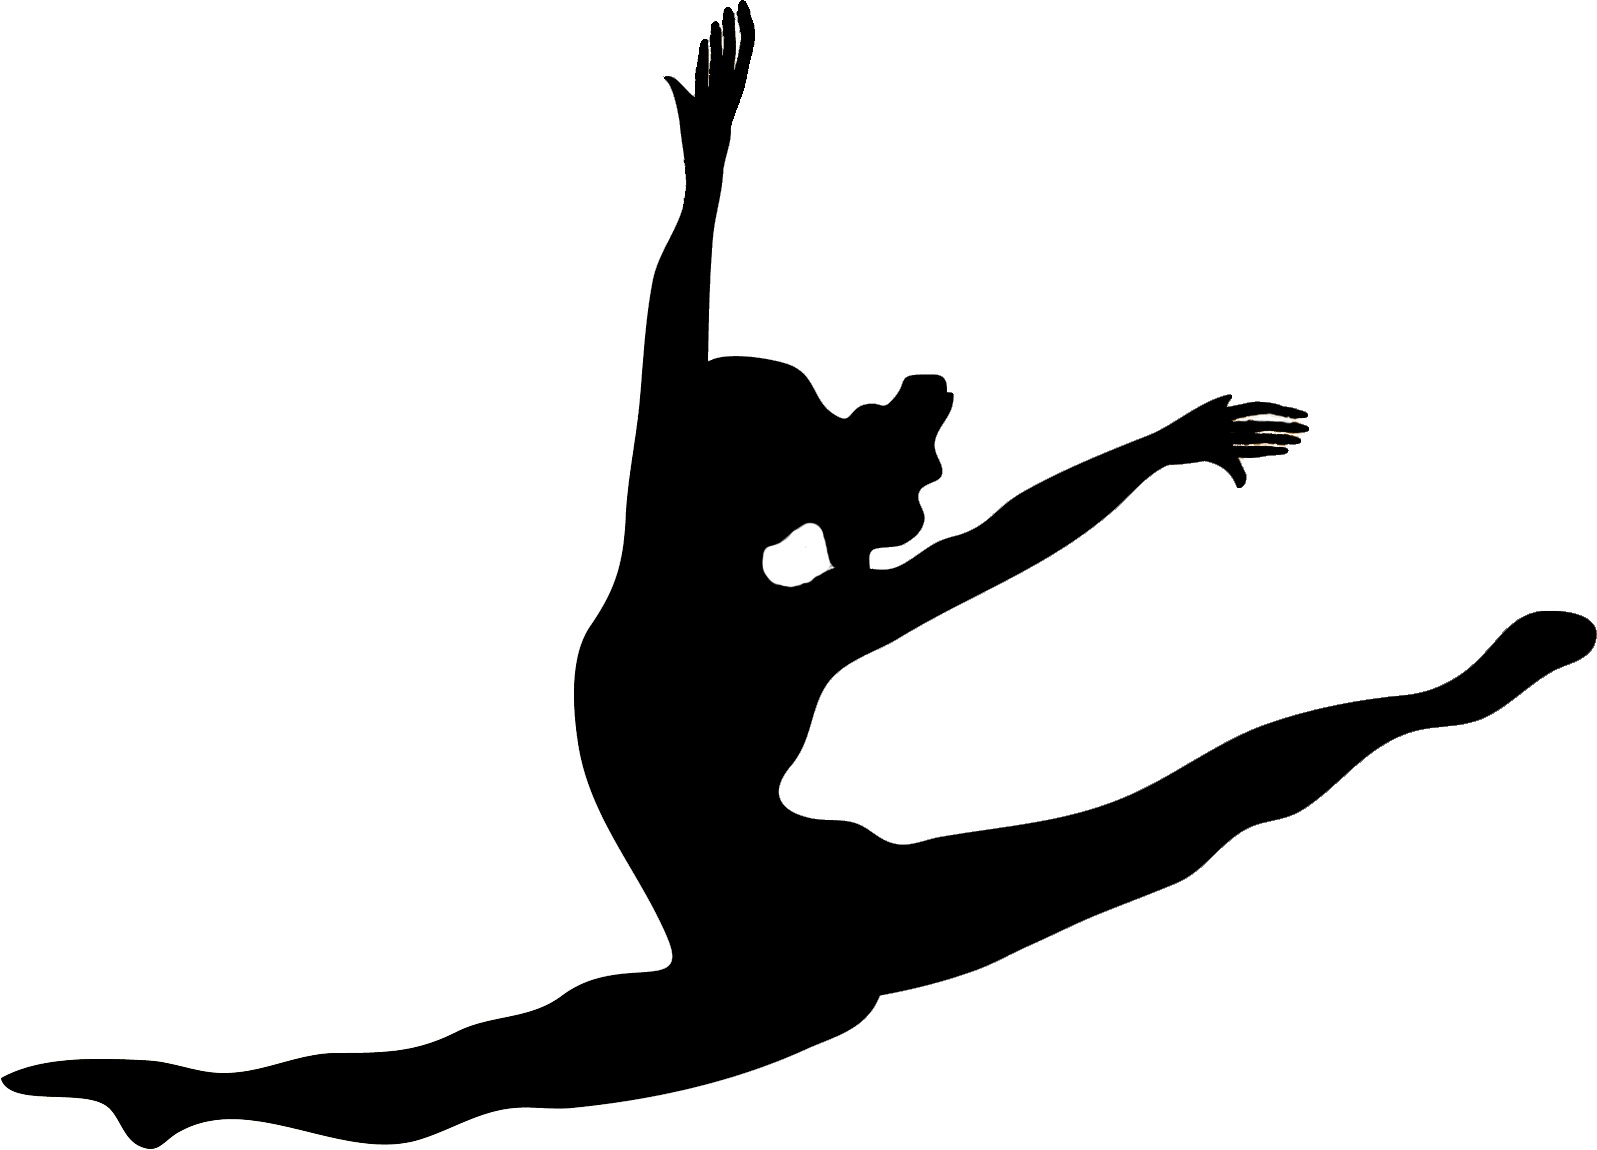 1597x1150 Dancer Images Silhouettes Collection